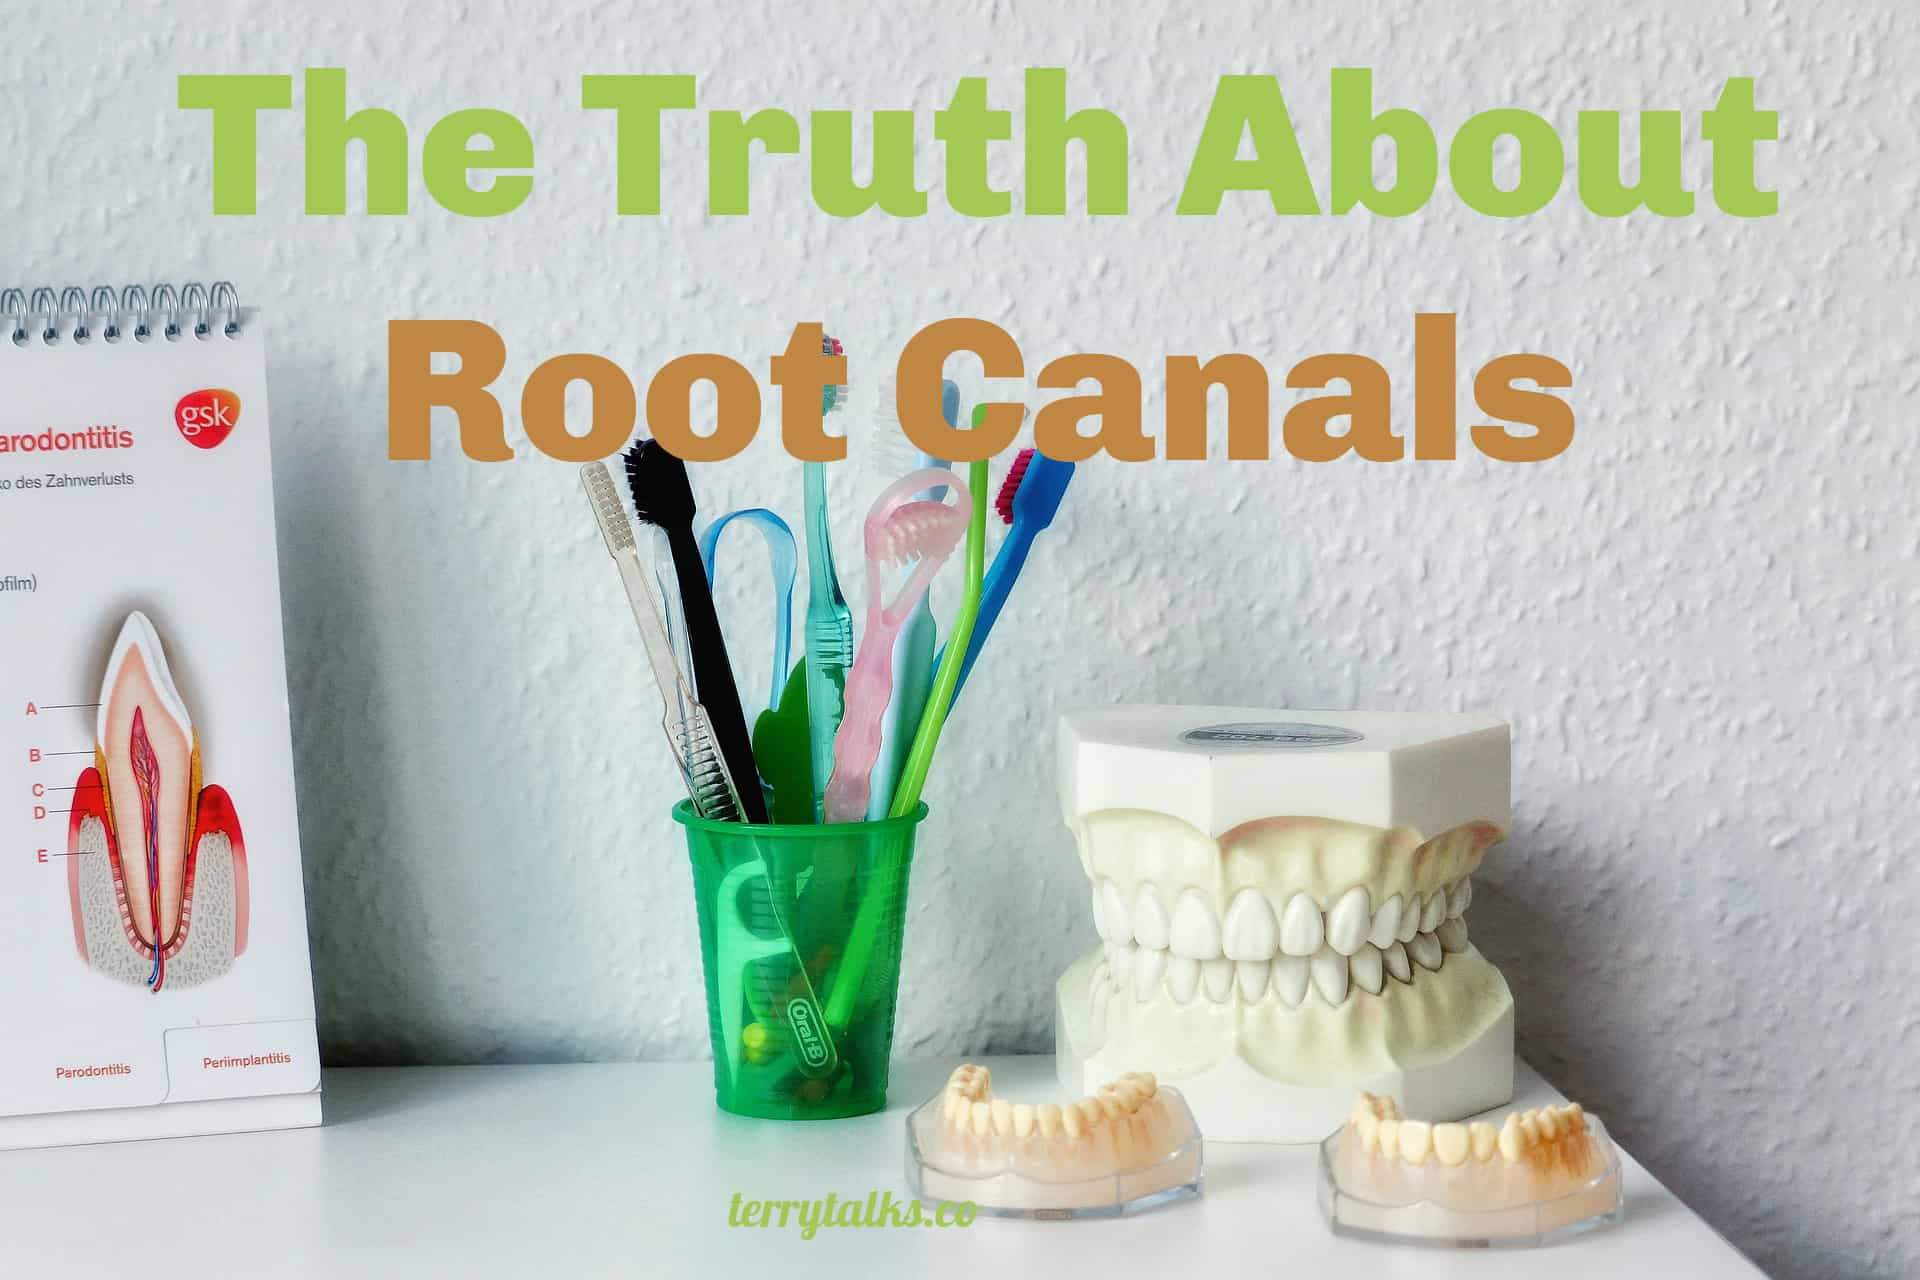 TheTruthAboutRootCanals